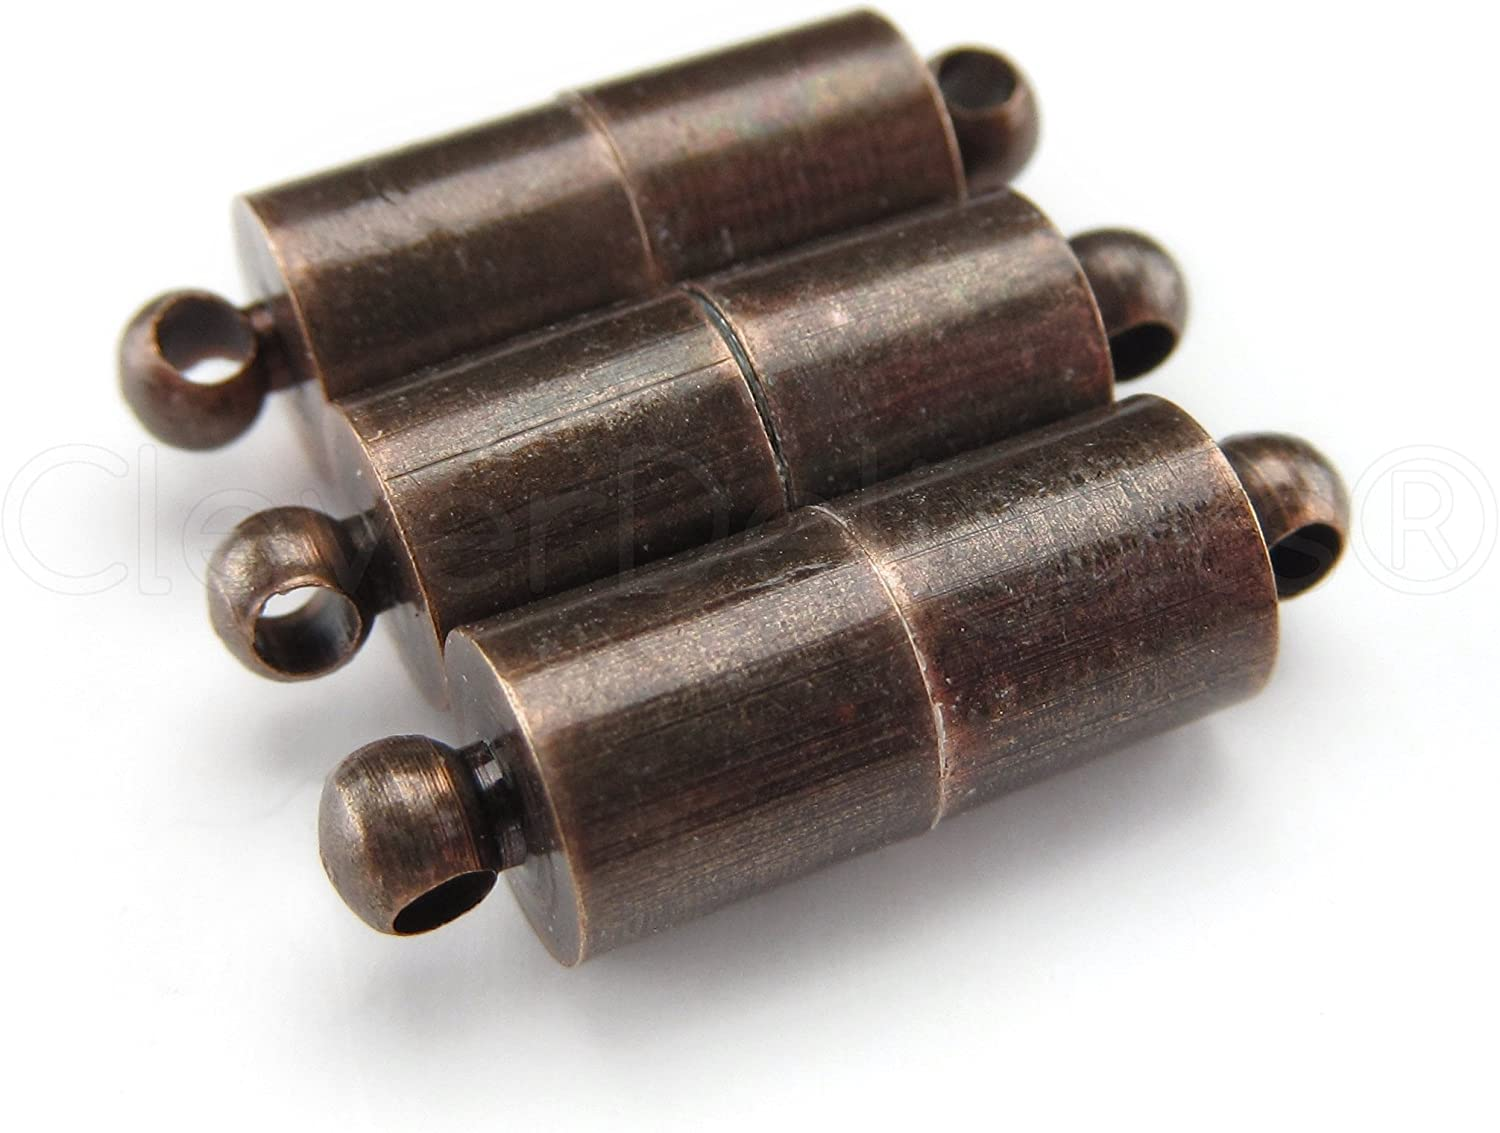 8 CleverDelights Magnetic Jewelry Clasps - Large Tube Style - Antique Copper Color - Clasp Converter